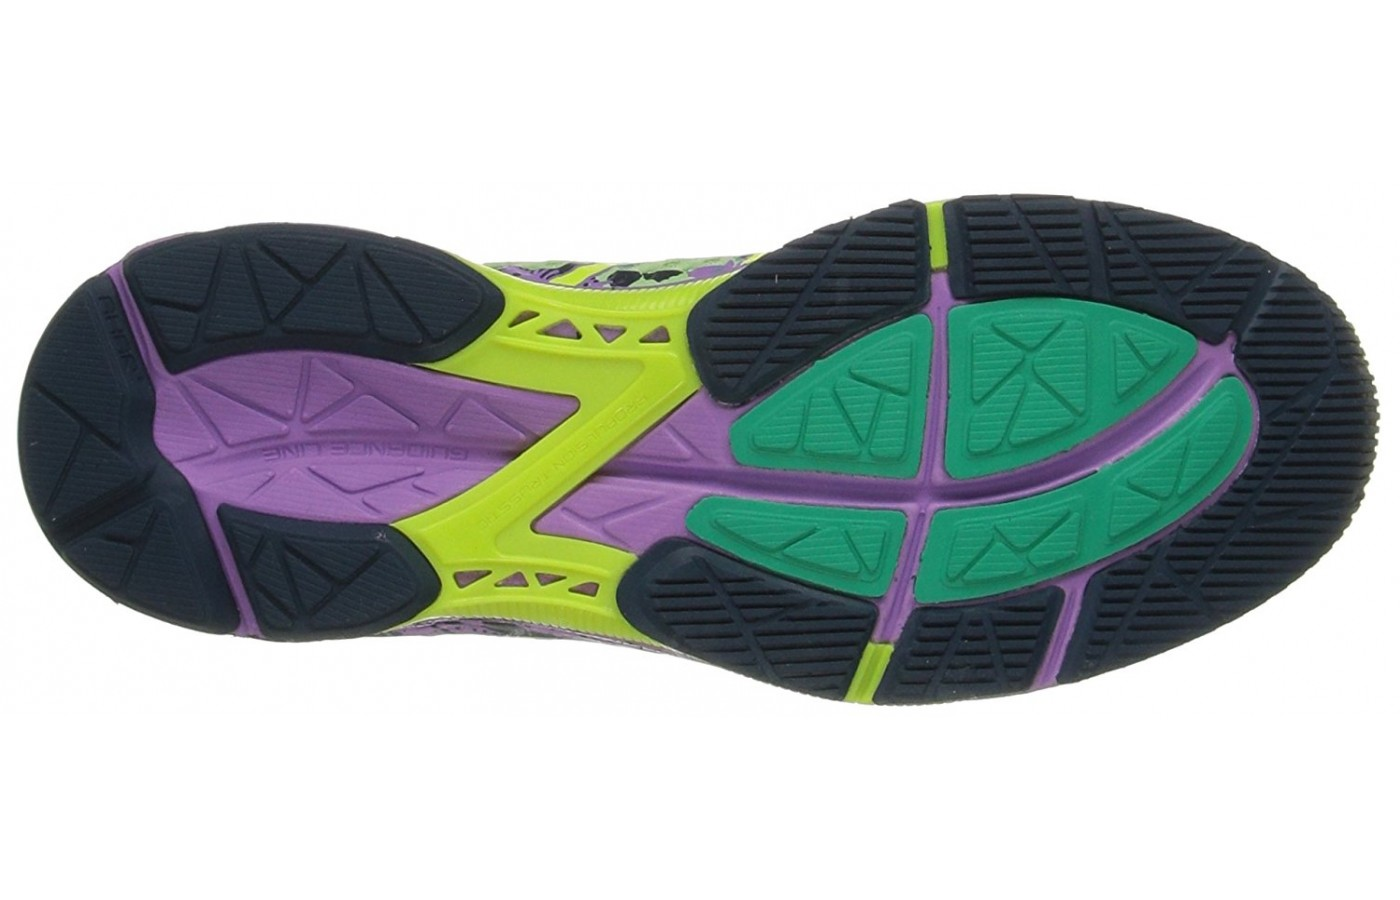 Asics Gel Noosa Tri 11 sole